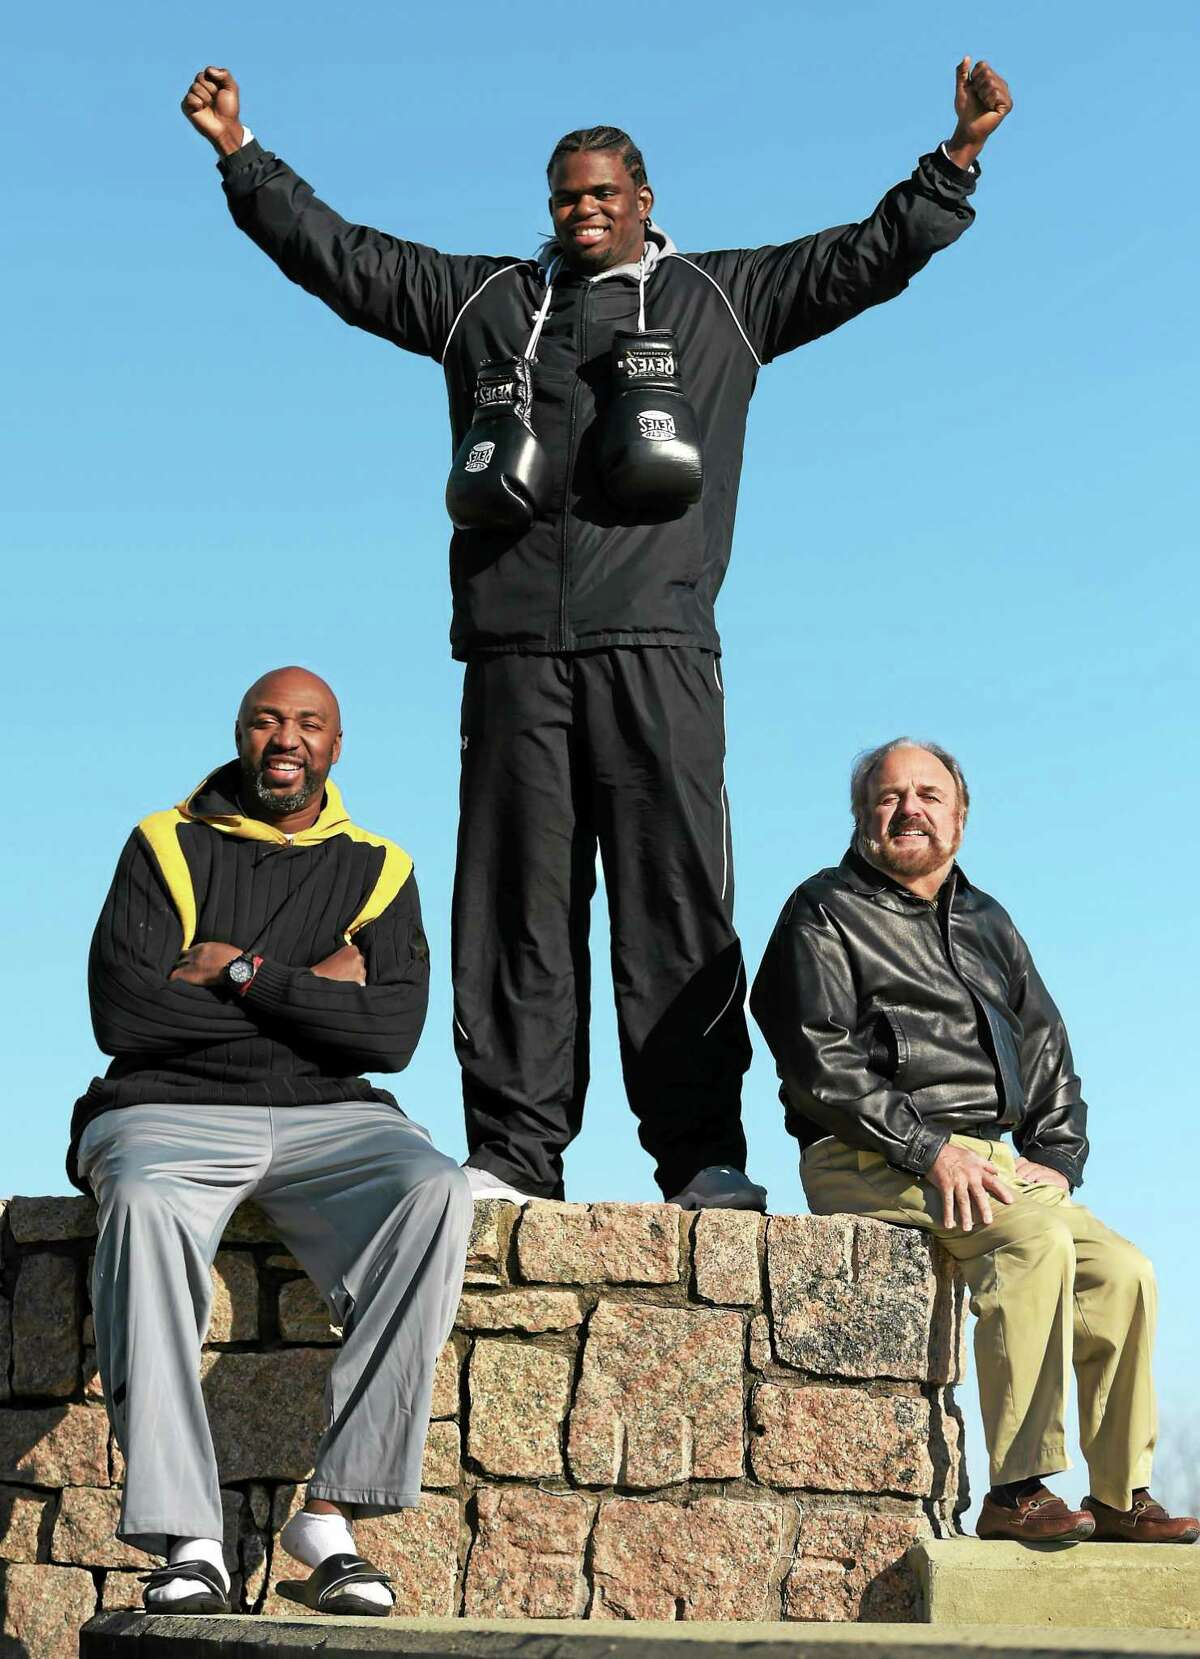 Former University of New Haven basketball star Cassius Chaney, now a professional boxer, poses with his managers Vin Baker of Old Saybrook, a former NBA standout, left, and Allen Hadelman, right.